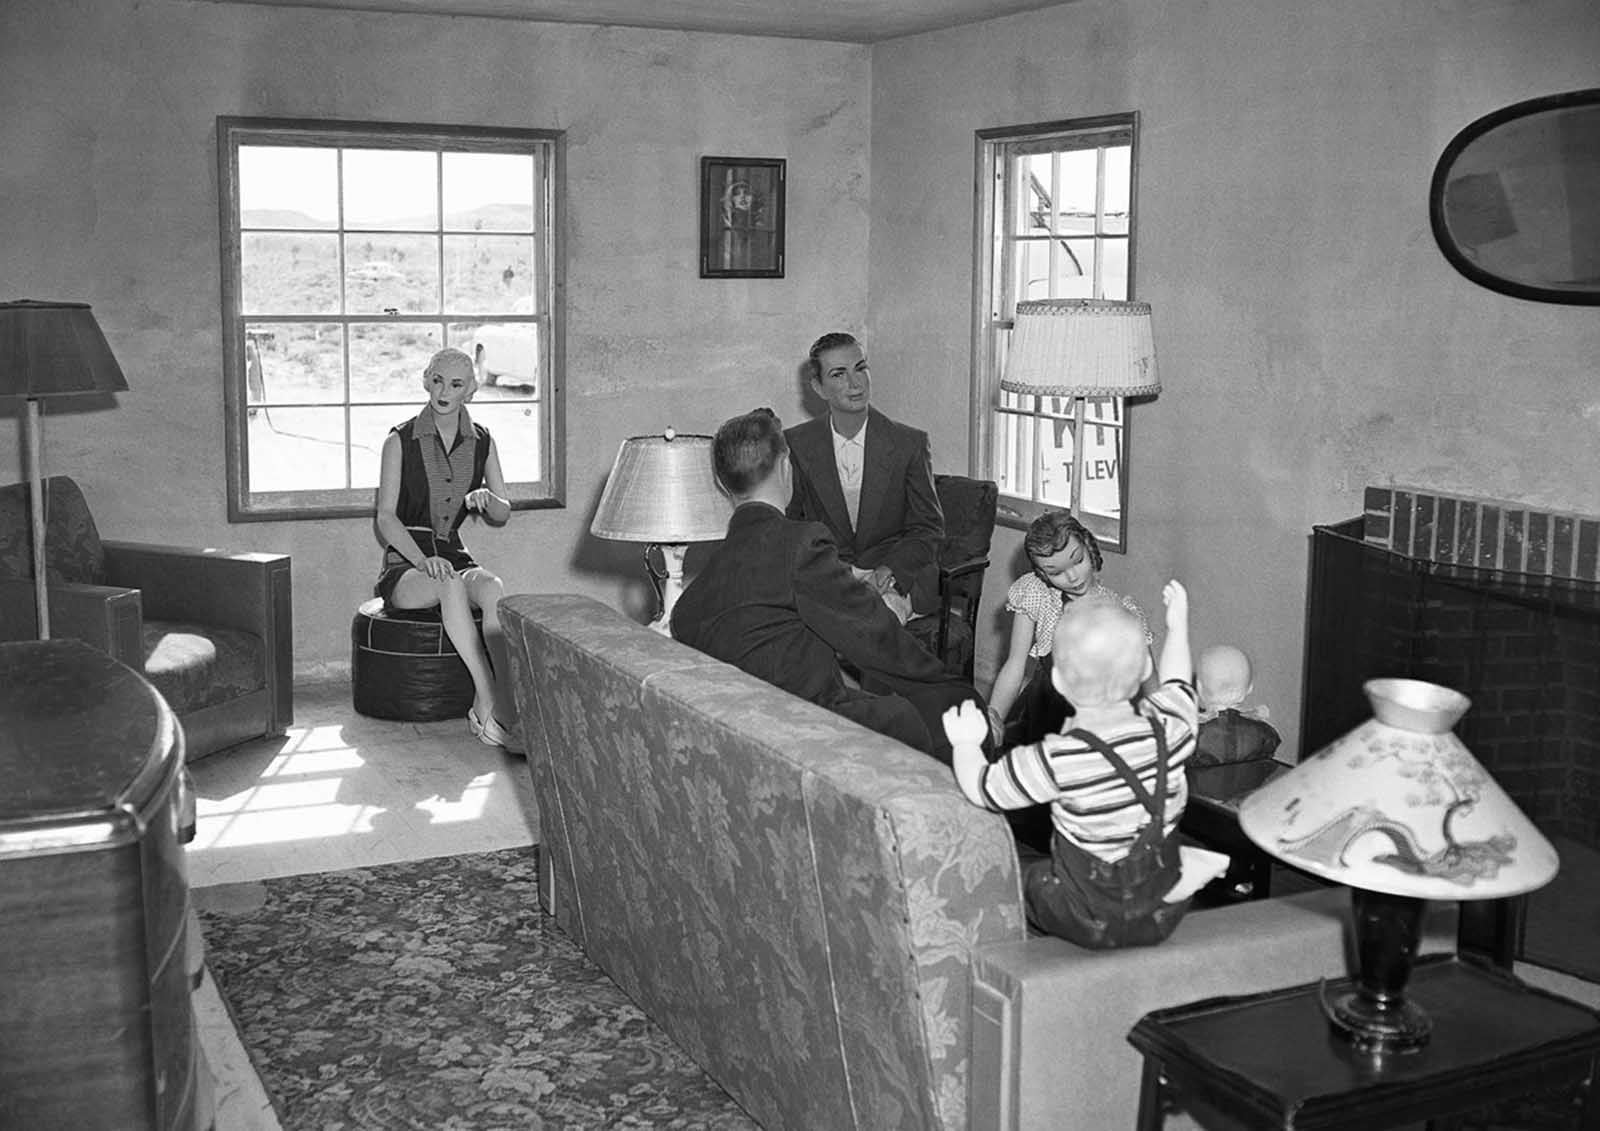 (1 of 2) Mannequins representing a typical American family gathered in a living room are pictured on March 15, 1953 in House No. 2, awaiting an atomic test explosion on the Nevada Proving Grounds.